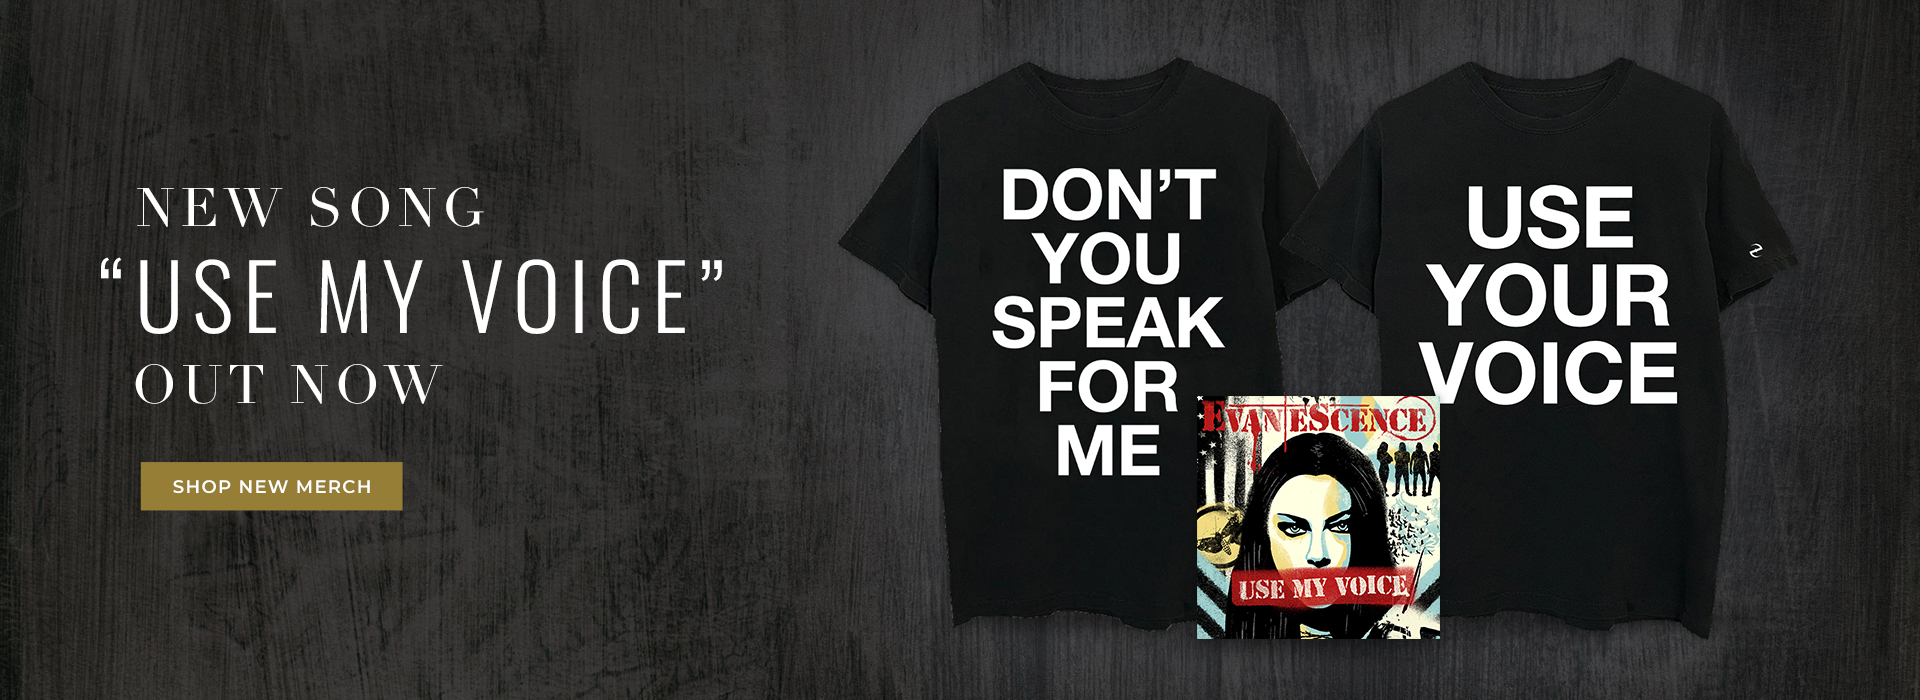 New song Use My Voice out now. Shop new merchandise.